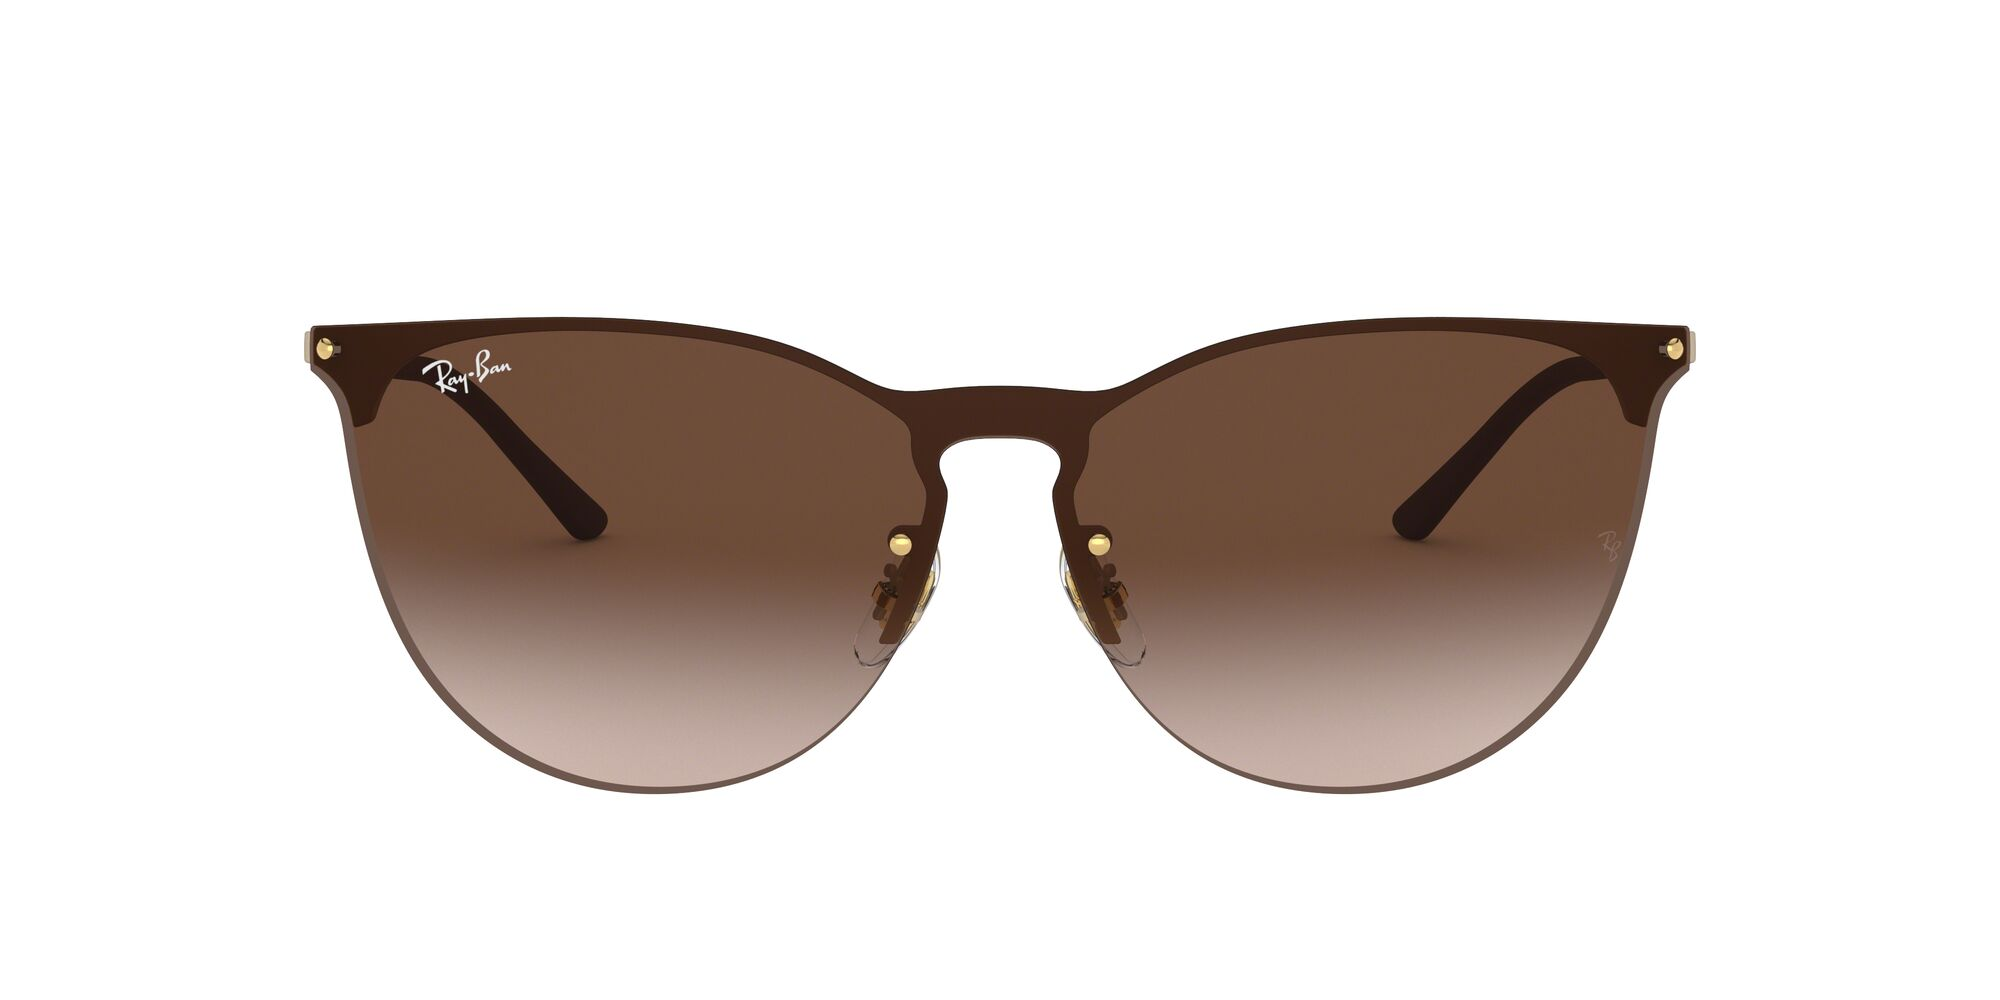 Front Ray-Ban Ray-Ban 0RB3652 901313 70/0 Goud/Bruin